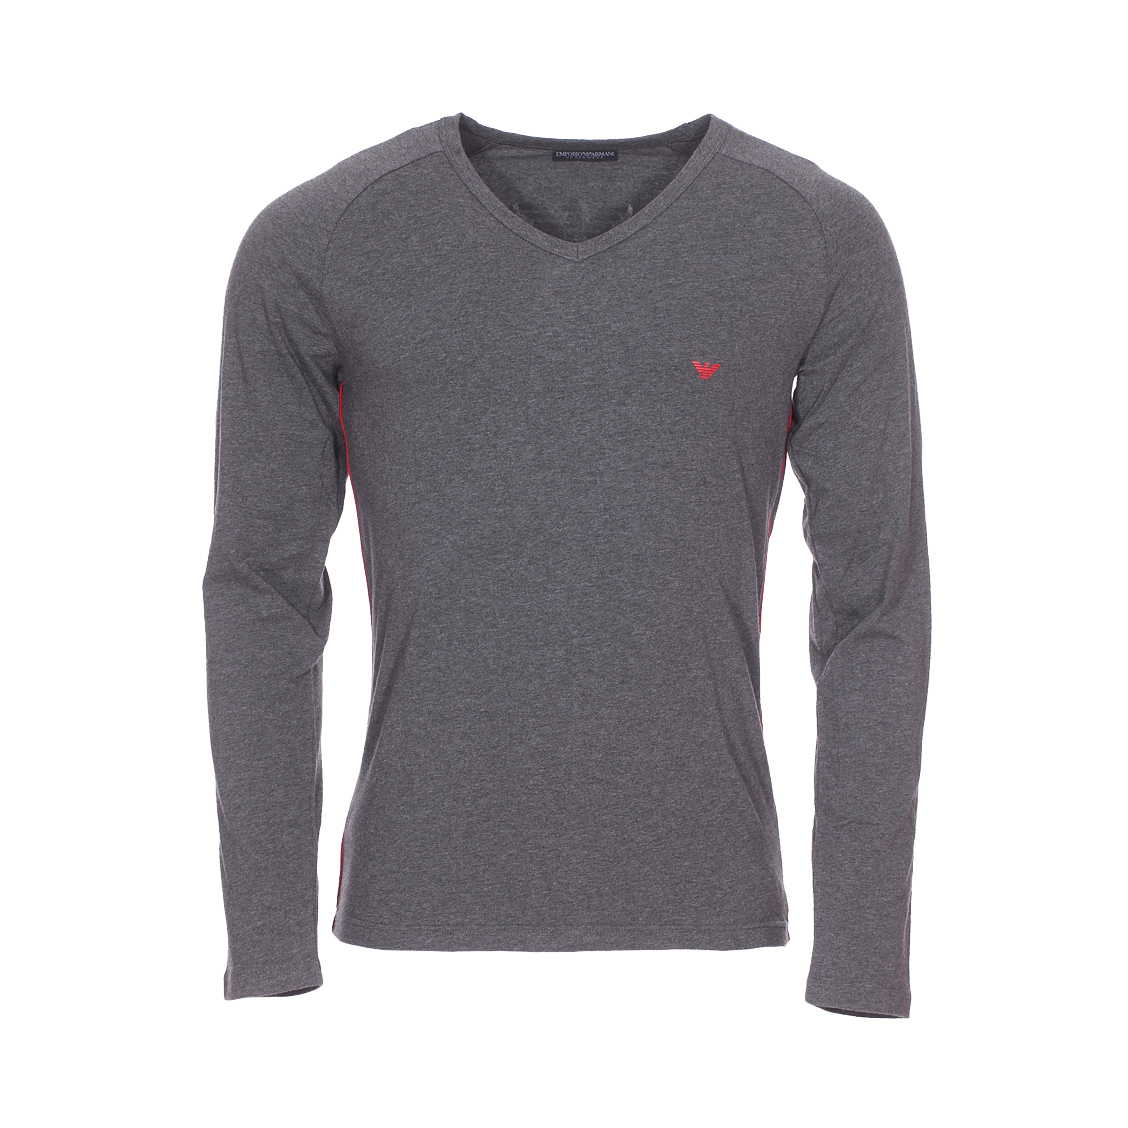 Tee-shirt manches longues col v  en coton stretch gris anthracite chiné